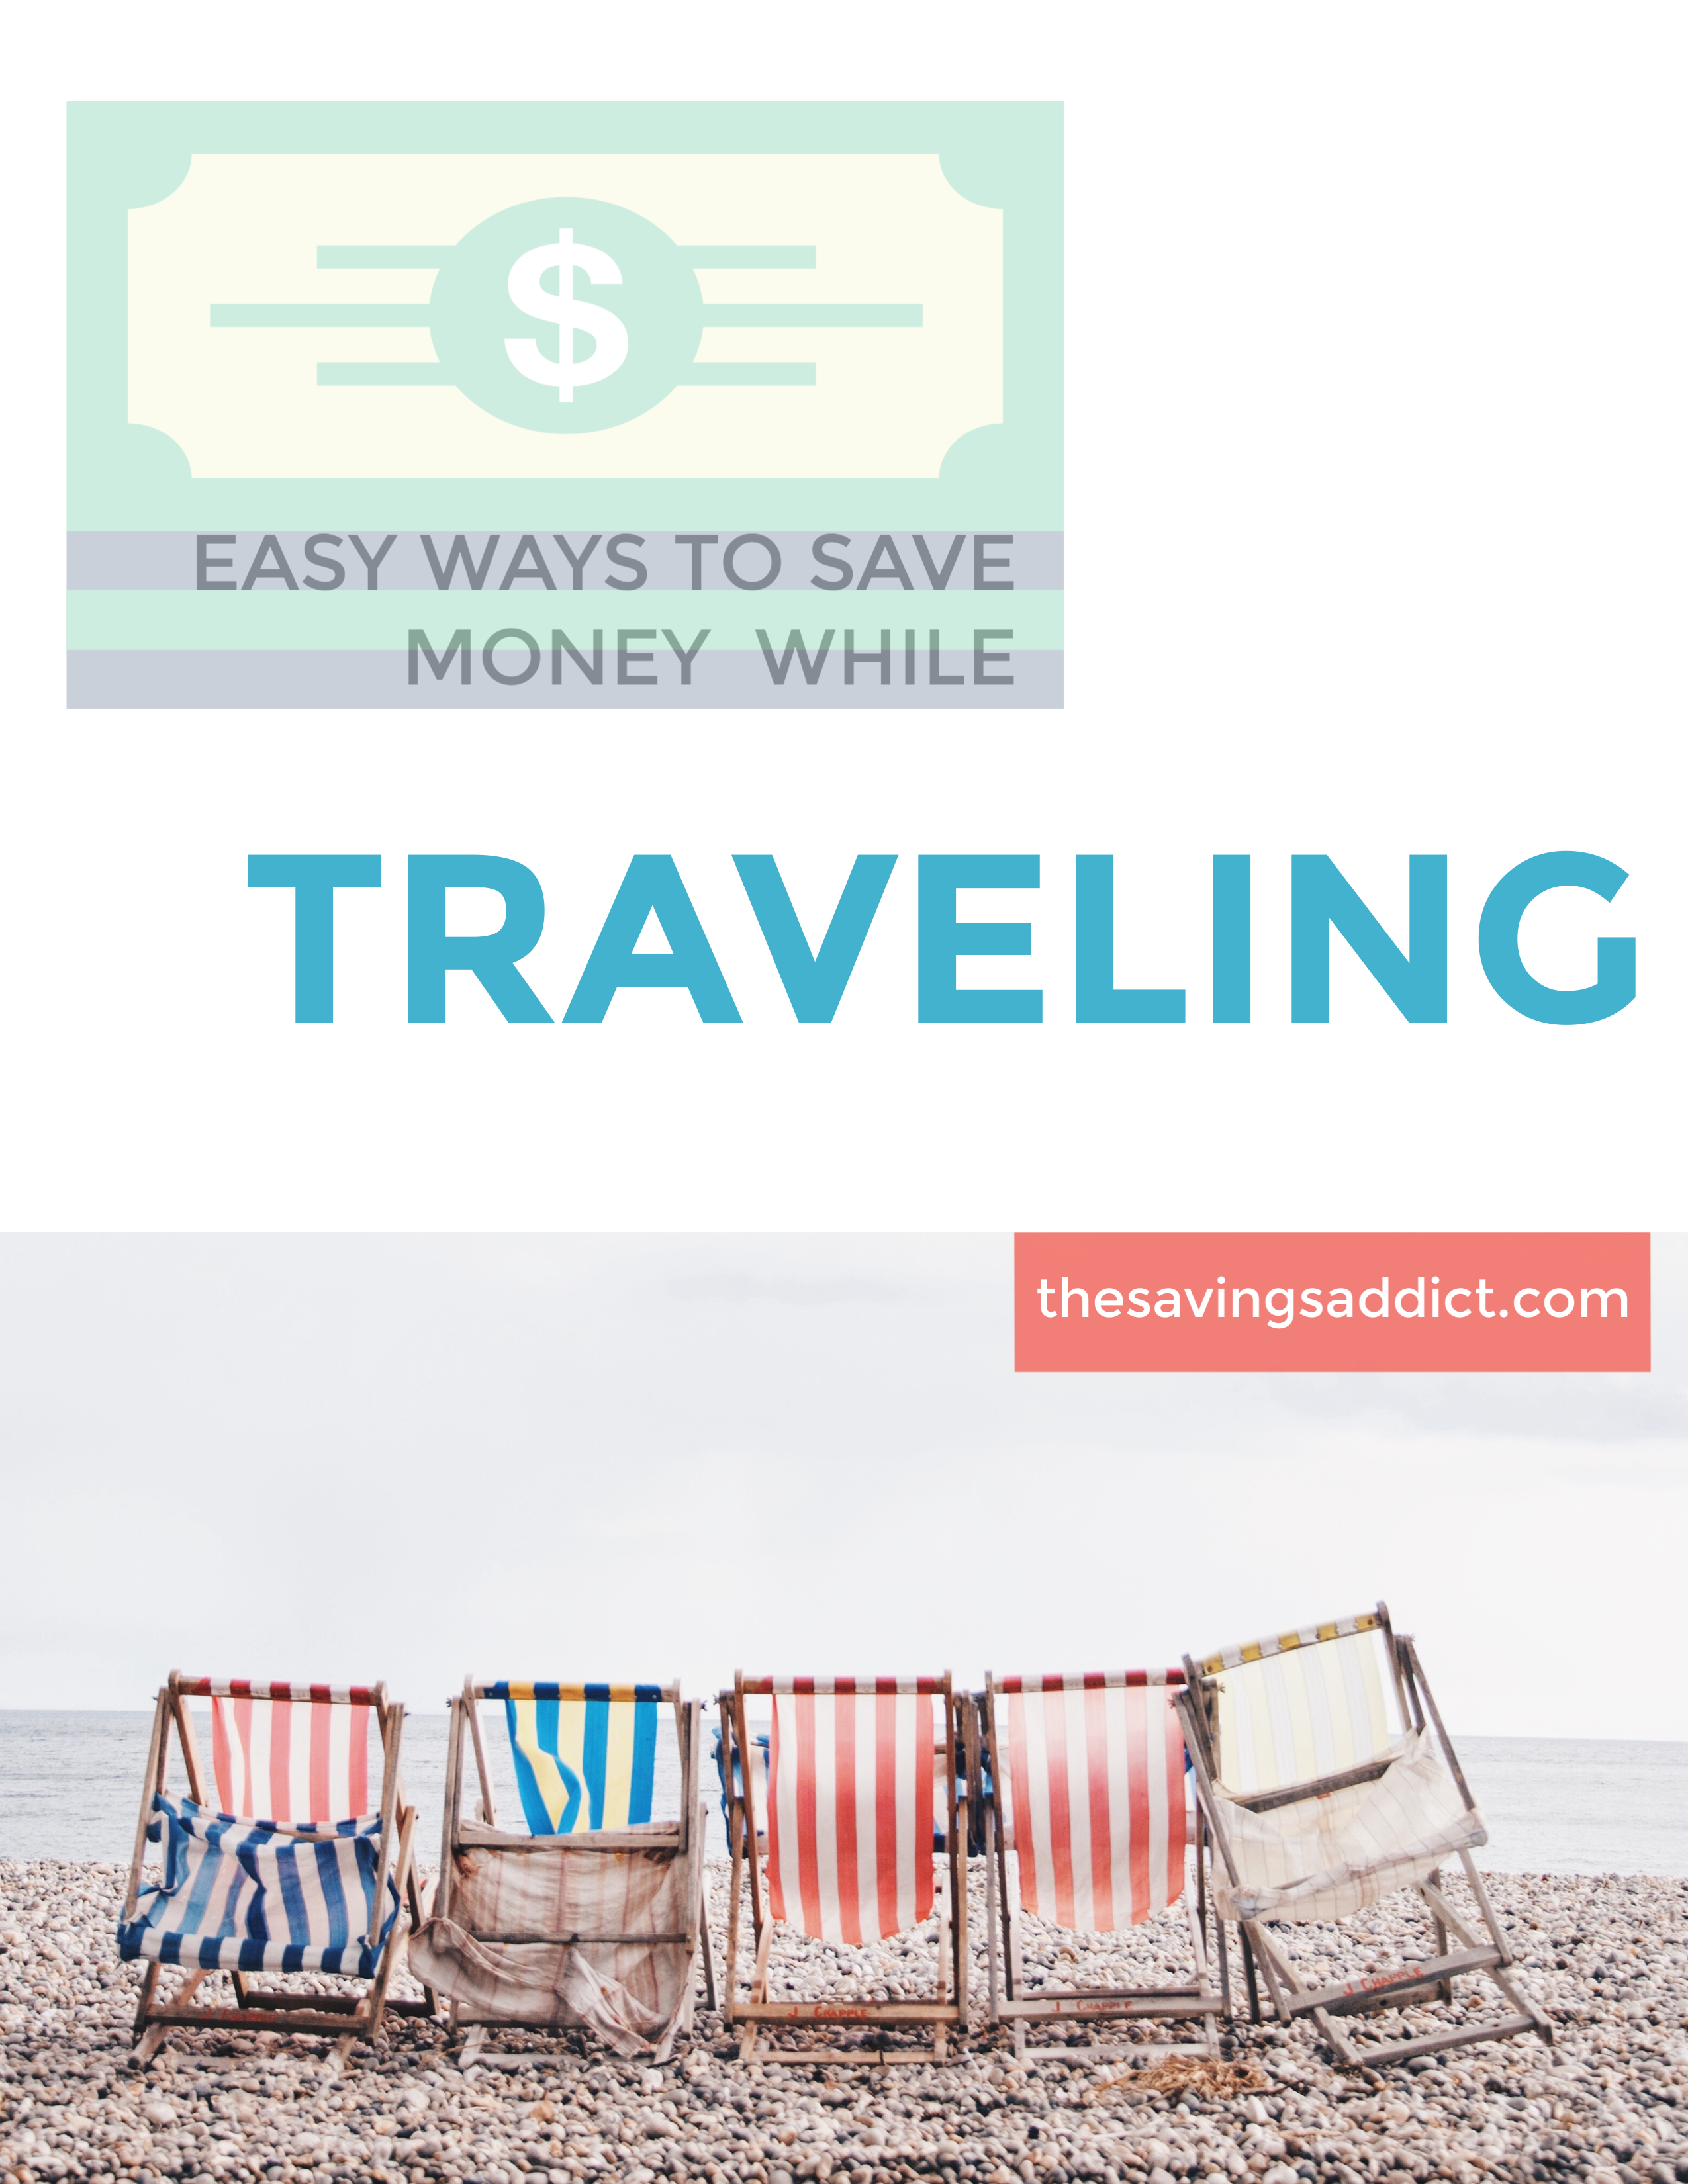 30 Genius Ways To Save Money On Travel Travel Savings Addict Ways To Save Money Saving Money Traveling By Yourself